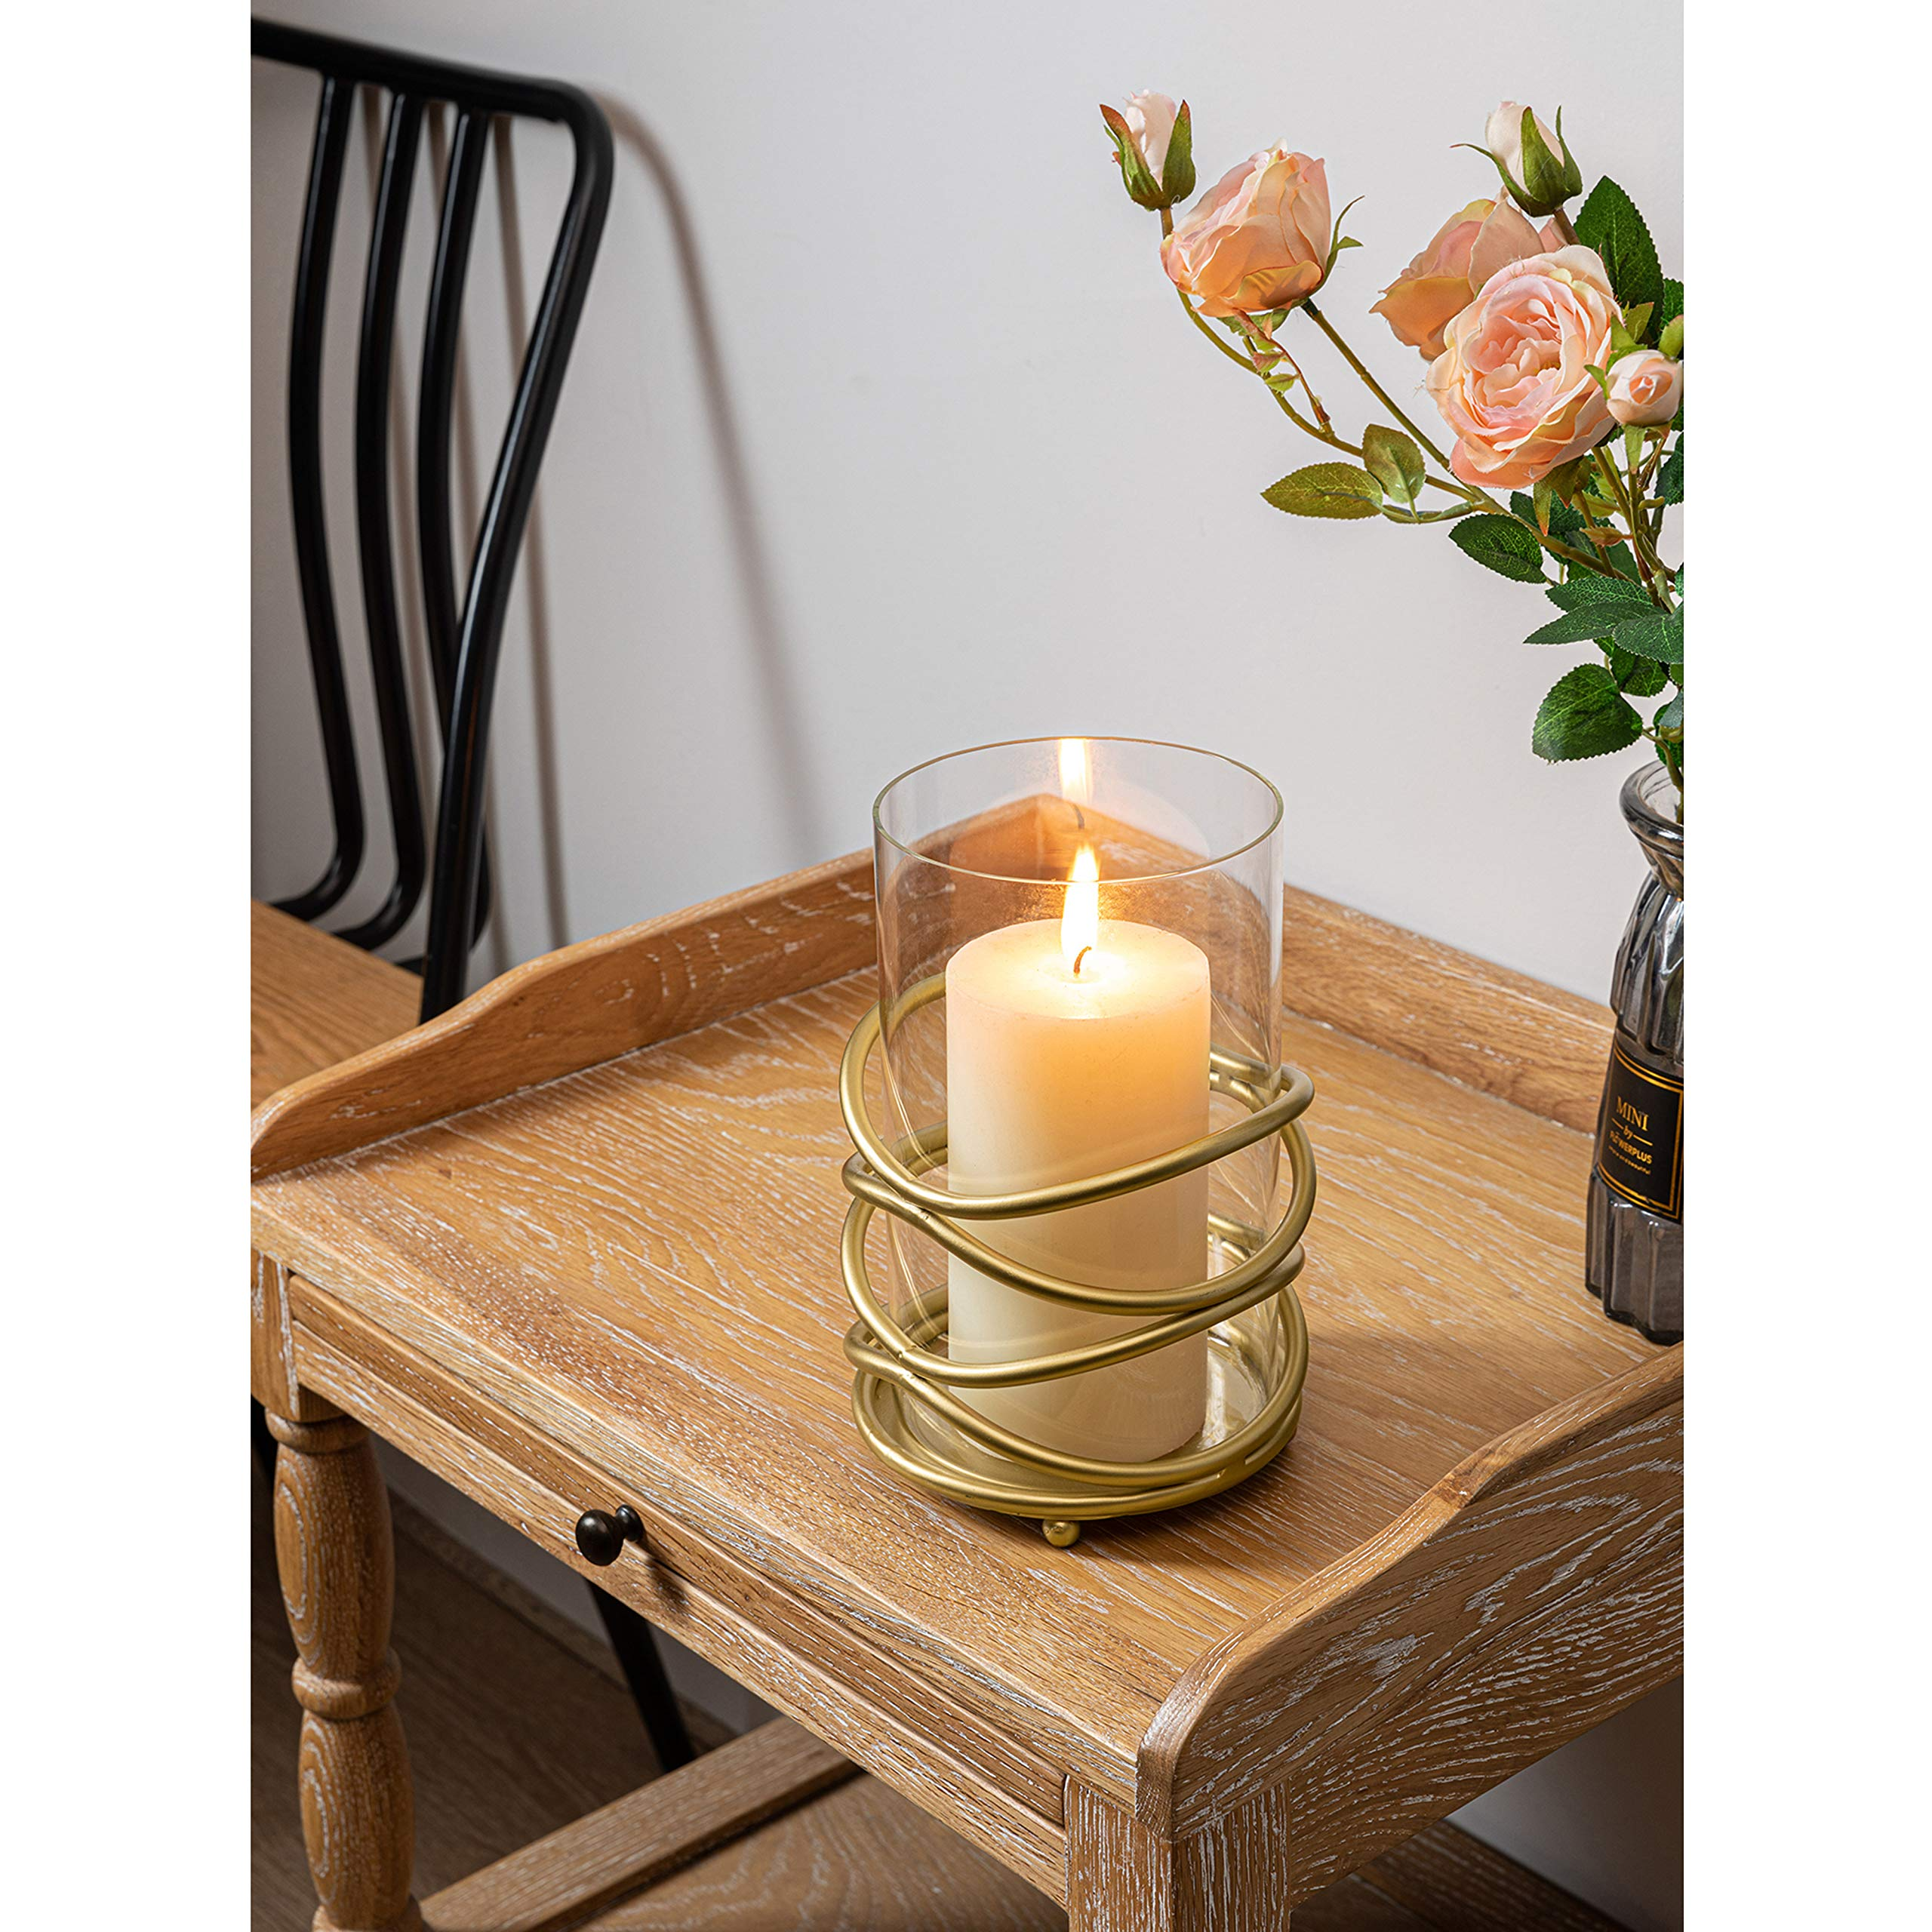 xuanjia Decorative Candle Holder with Removable Glass Hurricane for Wedding Decorations, Parties, or Everyday Home Decor